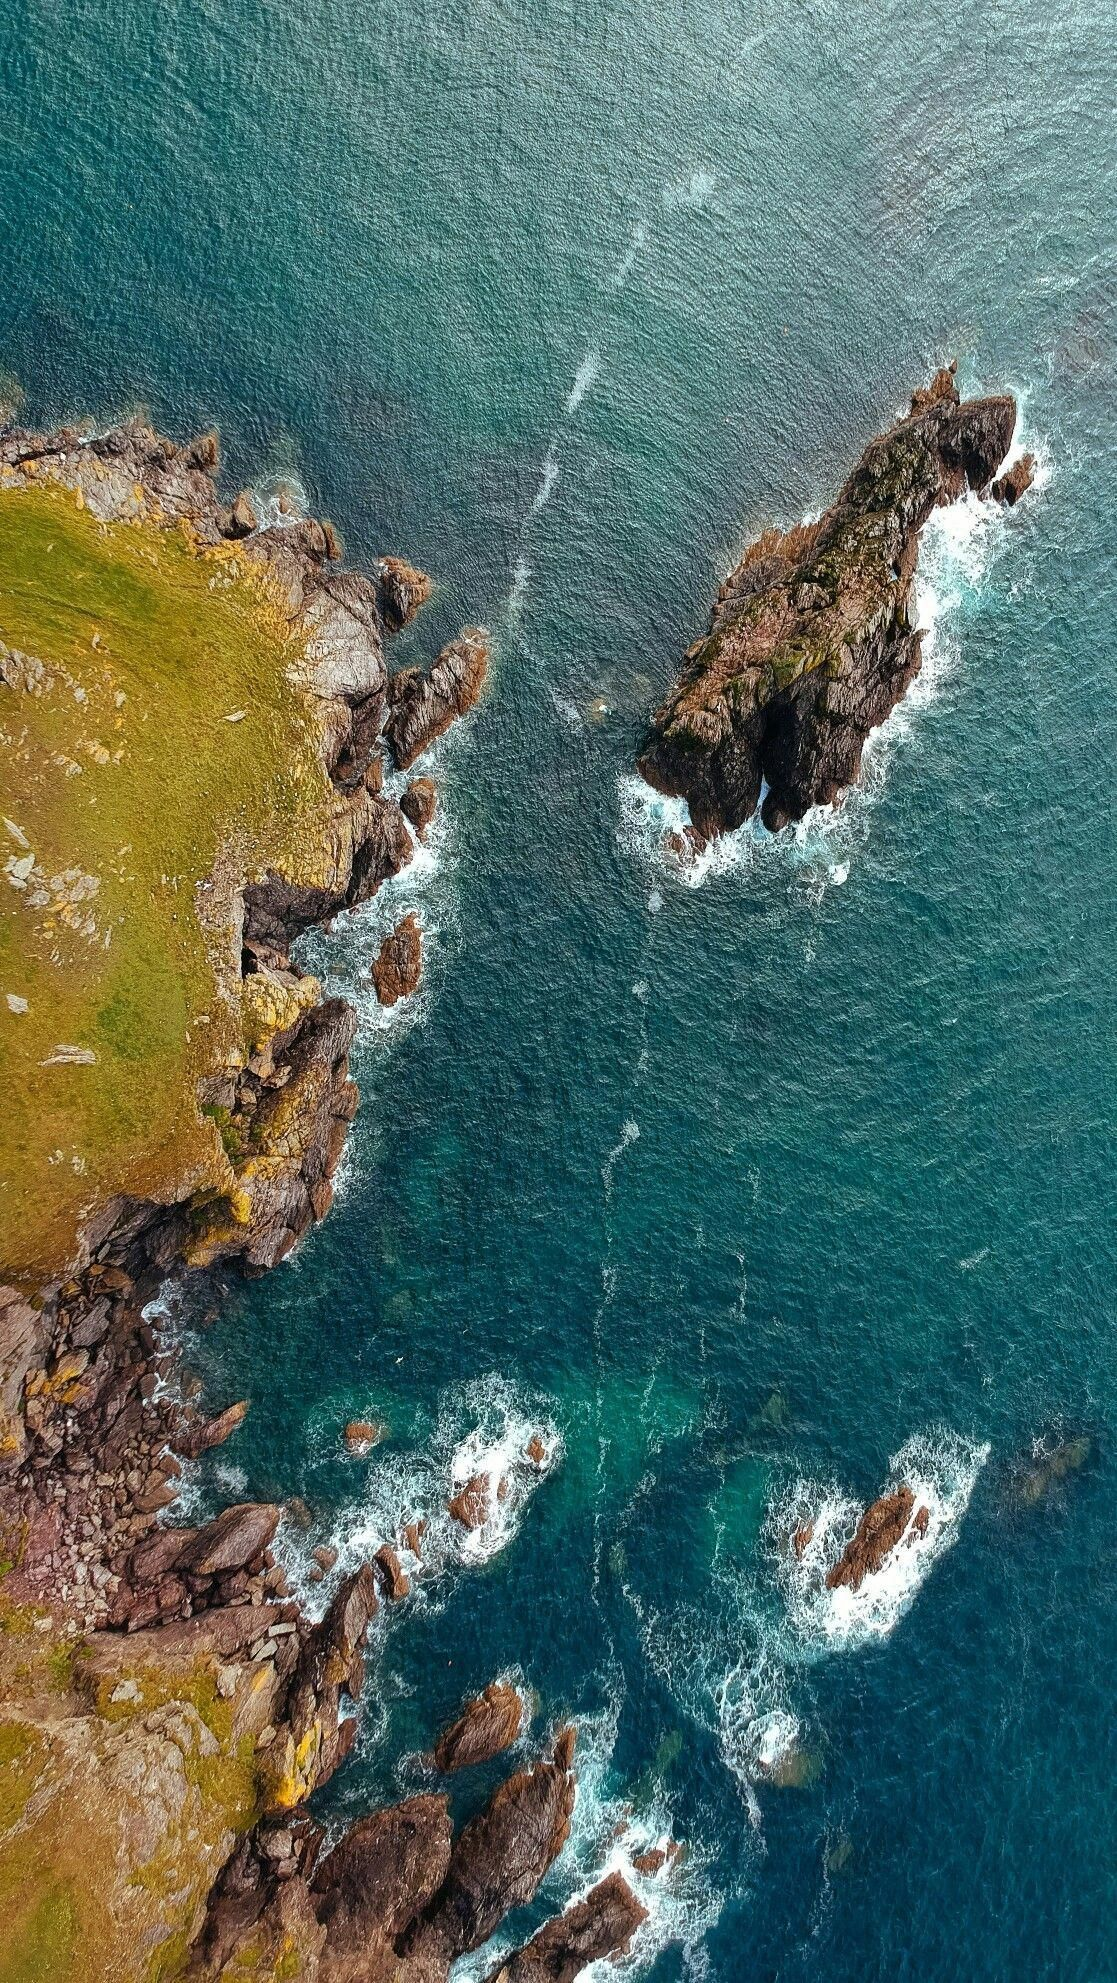 Landscape Drone Photography : - DronesRate.com   Your N°1 Source for Drone Industry News & Inspiration